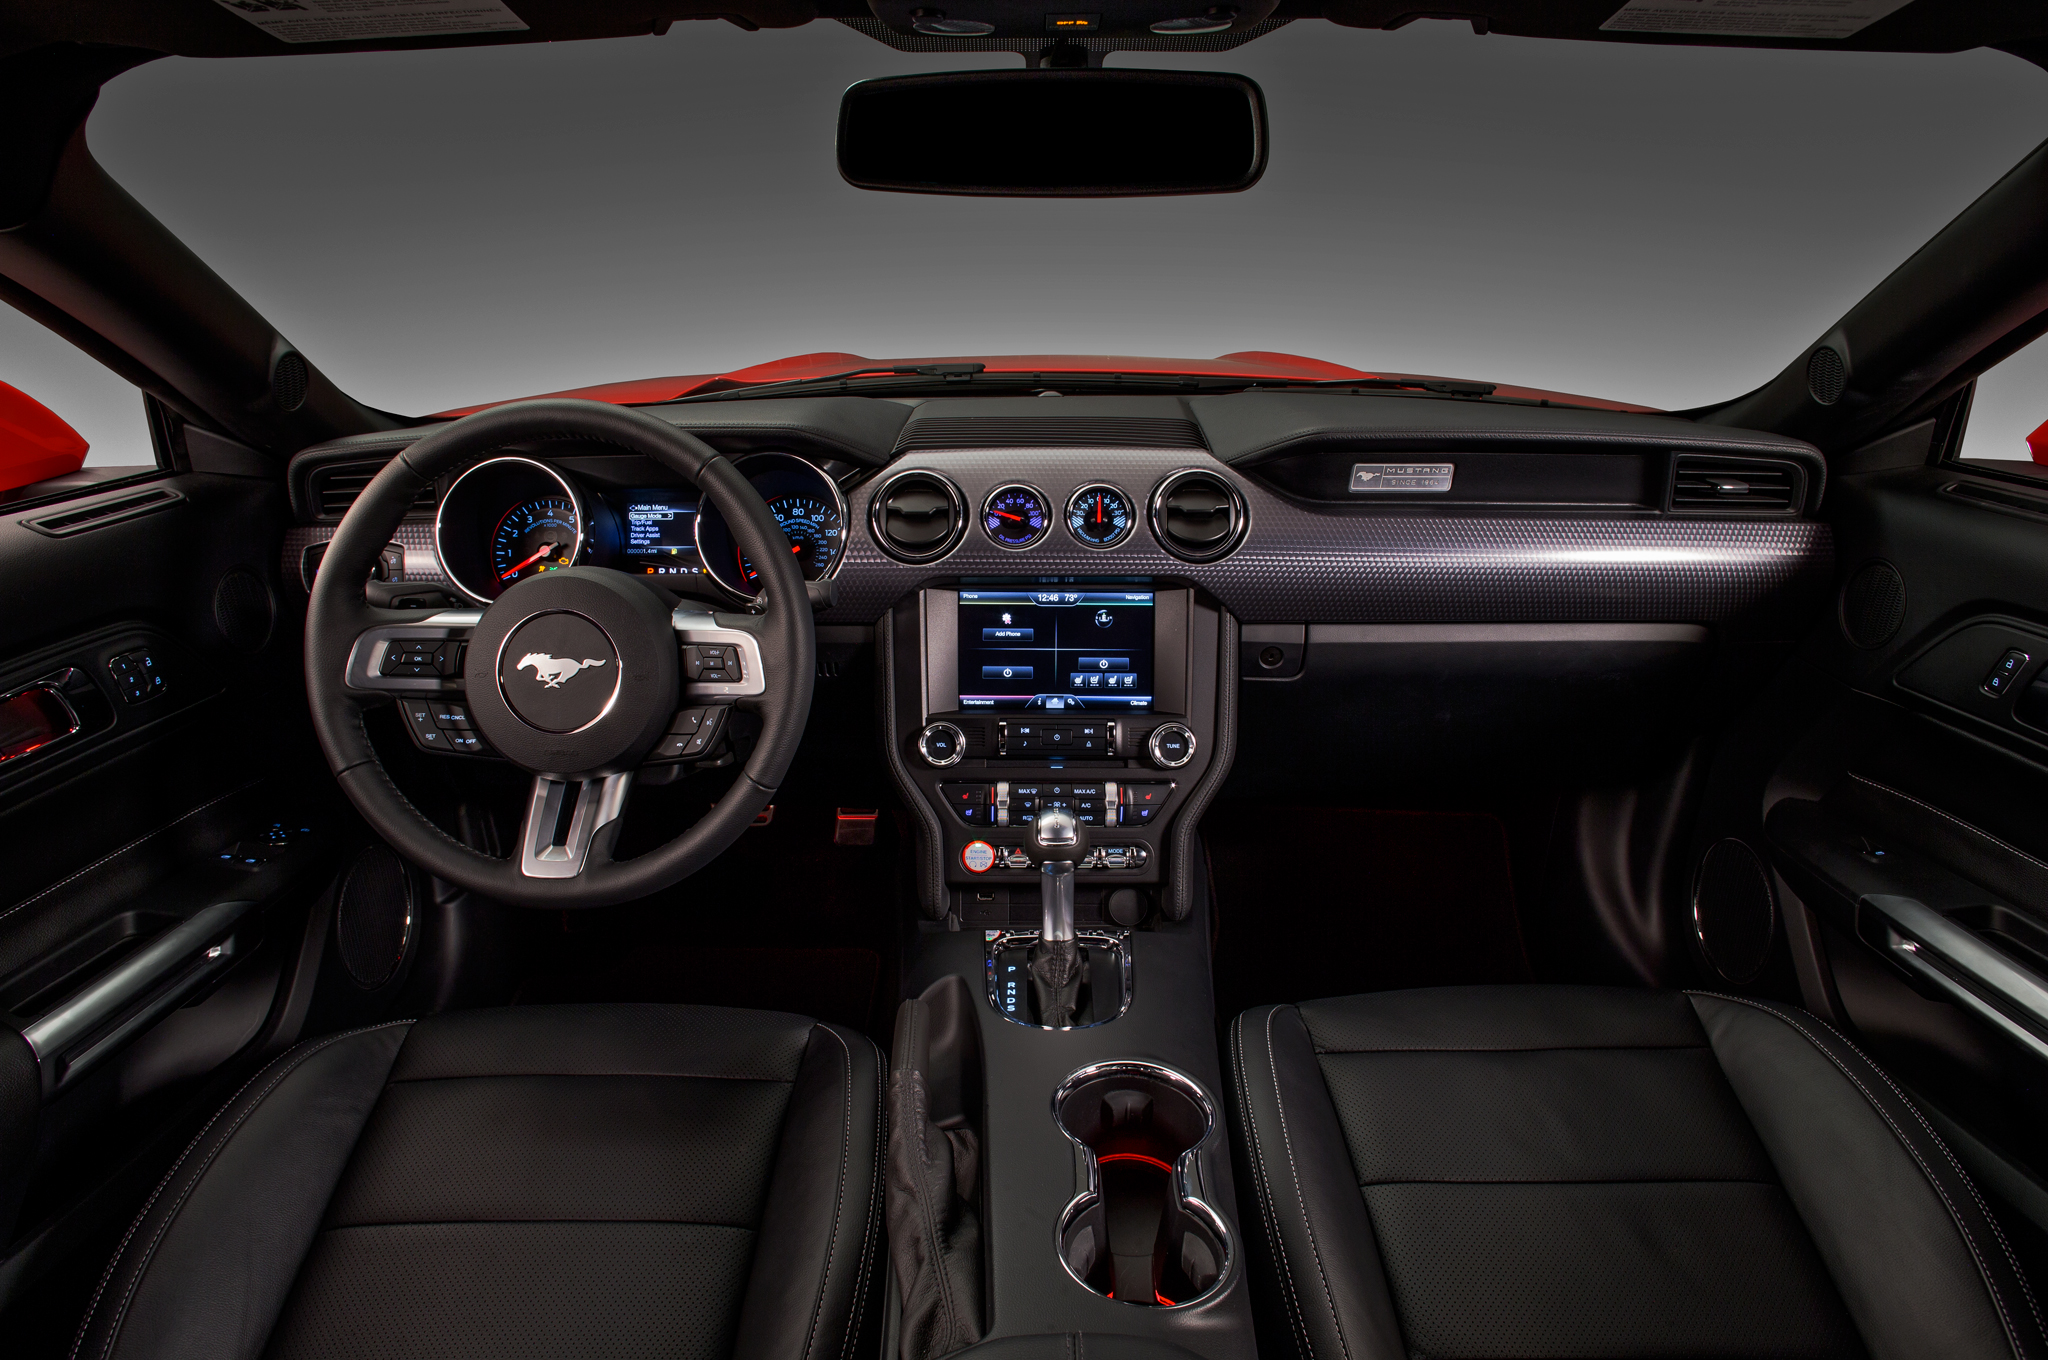 2015 Ford Mustang Cockpit And Dashboard (Photo 2 of 30)